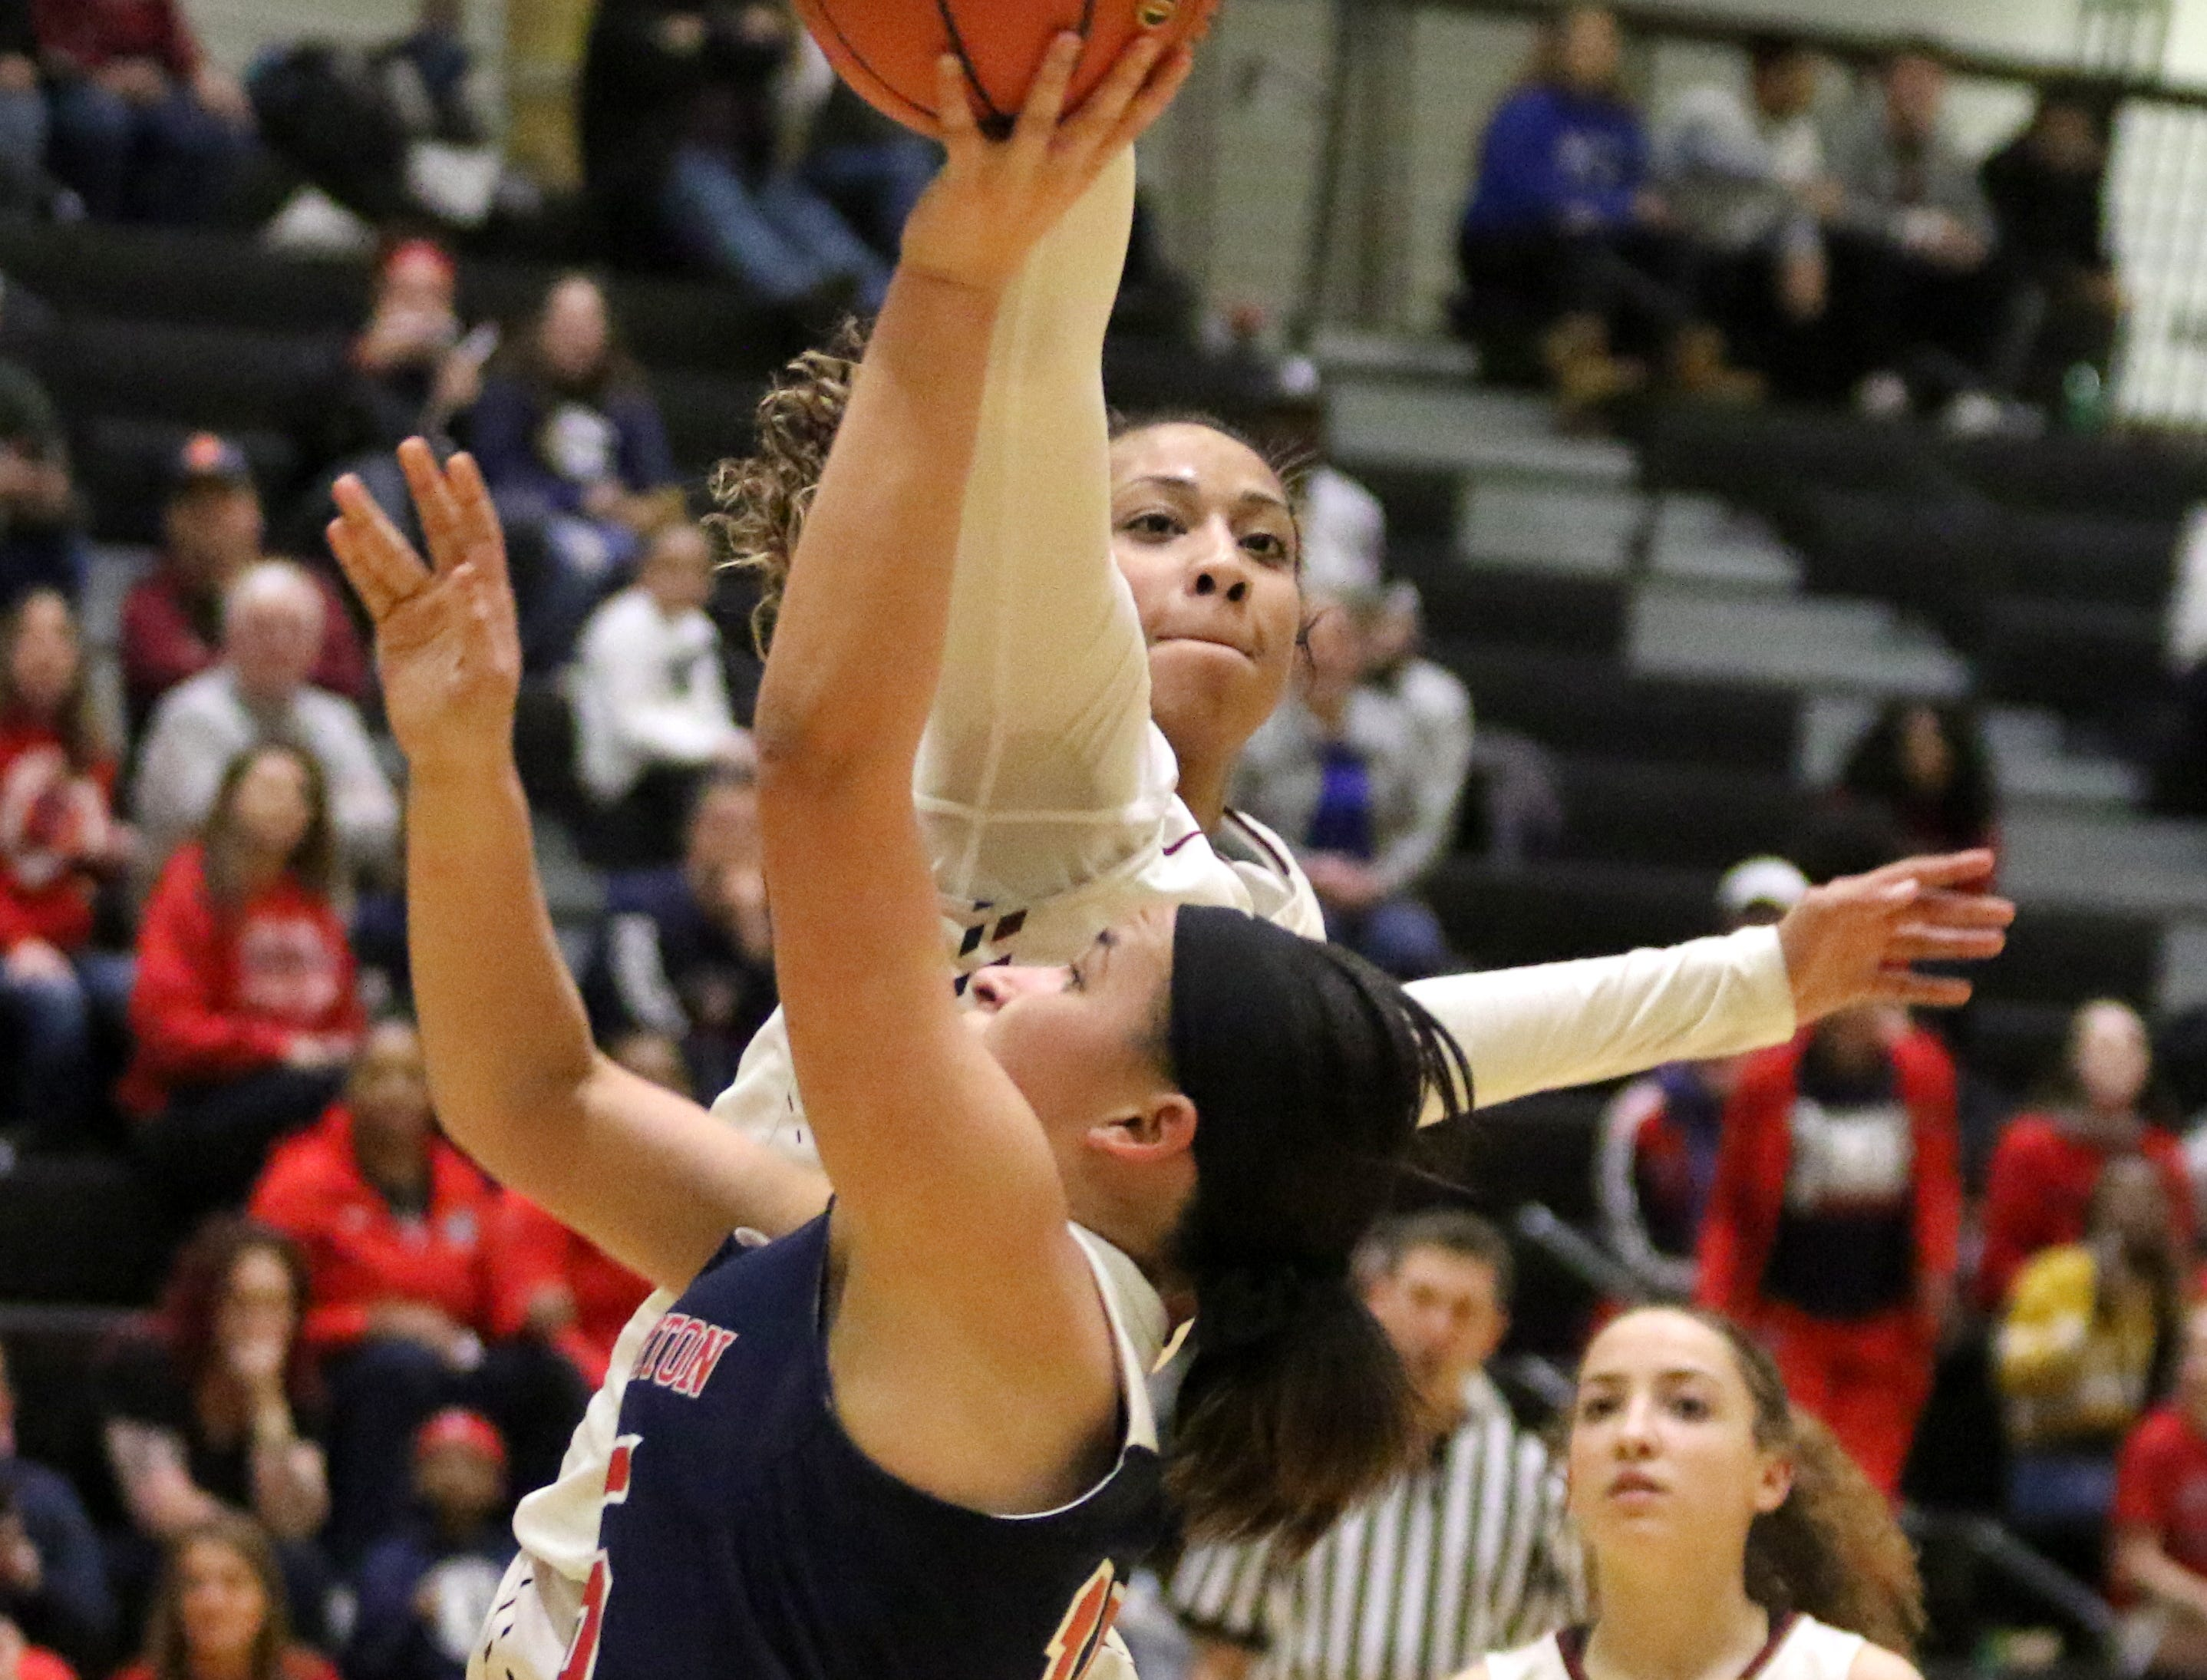 Photos from the Section 4 Class AA girls basketball final between Elmira and Binghamton on March 1, 2019 at Corning-Painted Post High School.